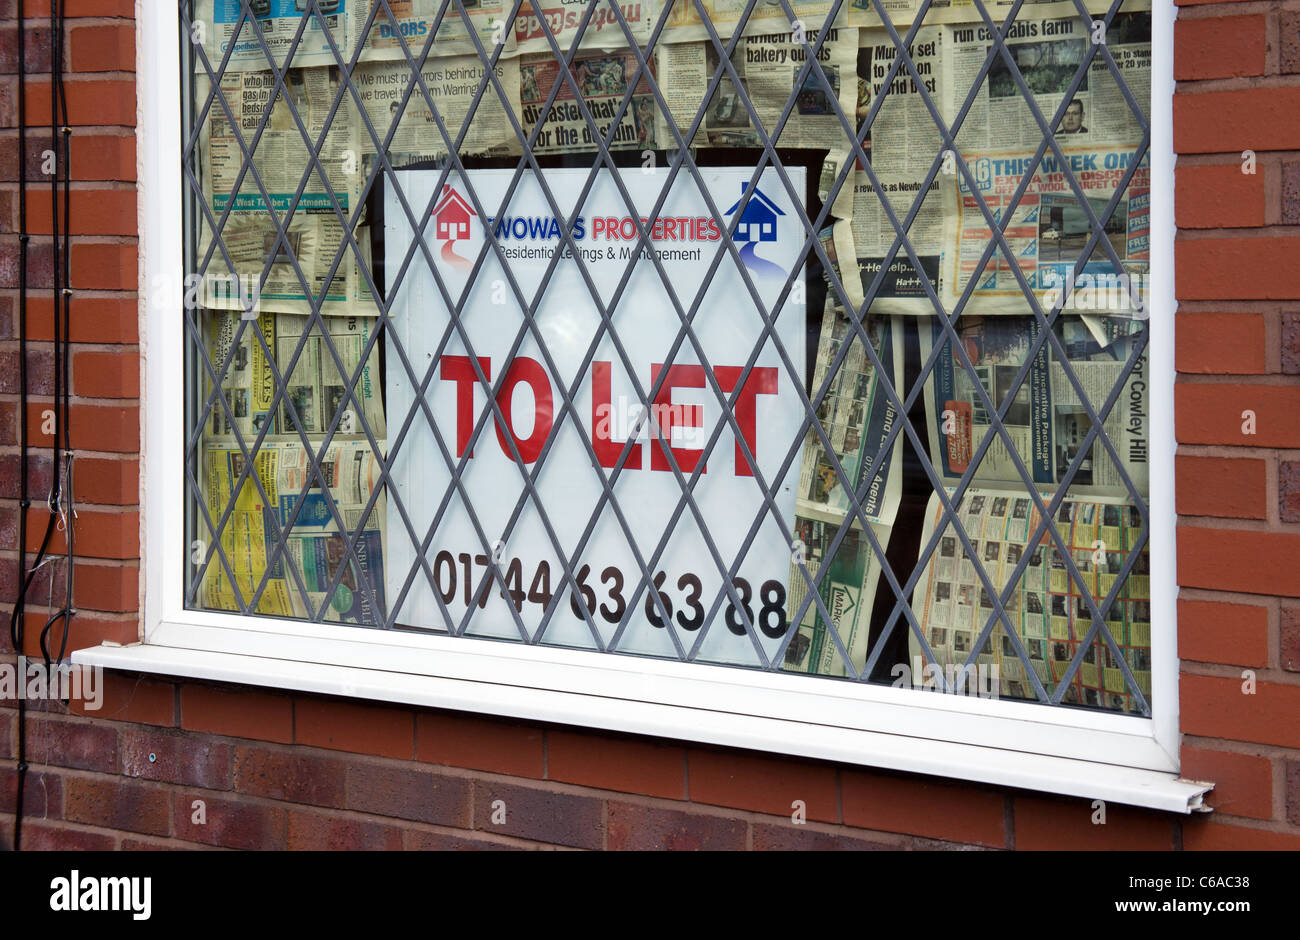 A ' To Let ' sign in a house window,  merseyside, uk - Stock Image